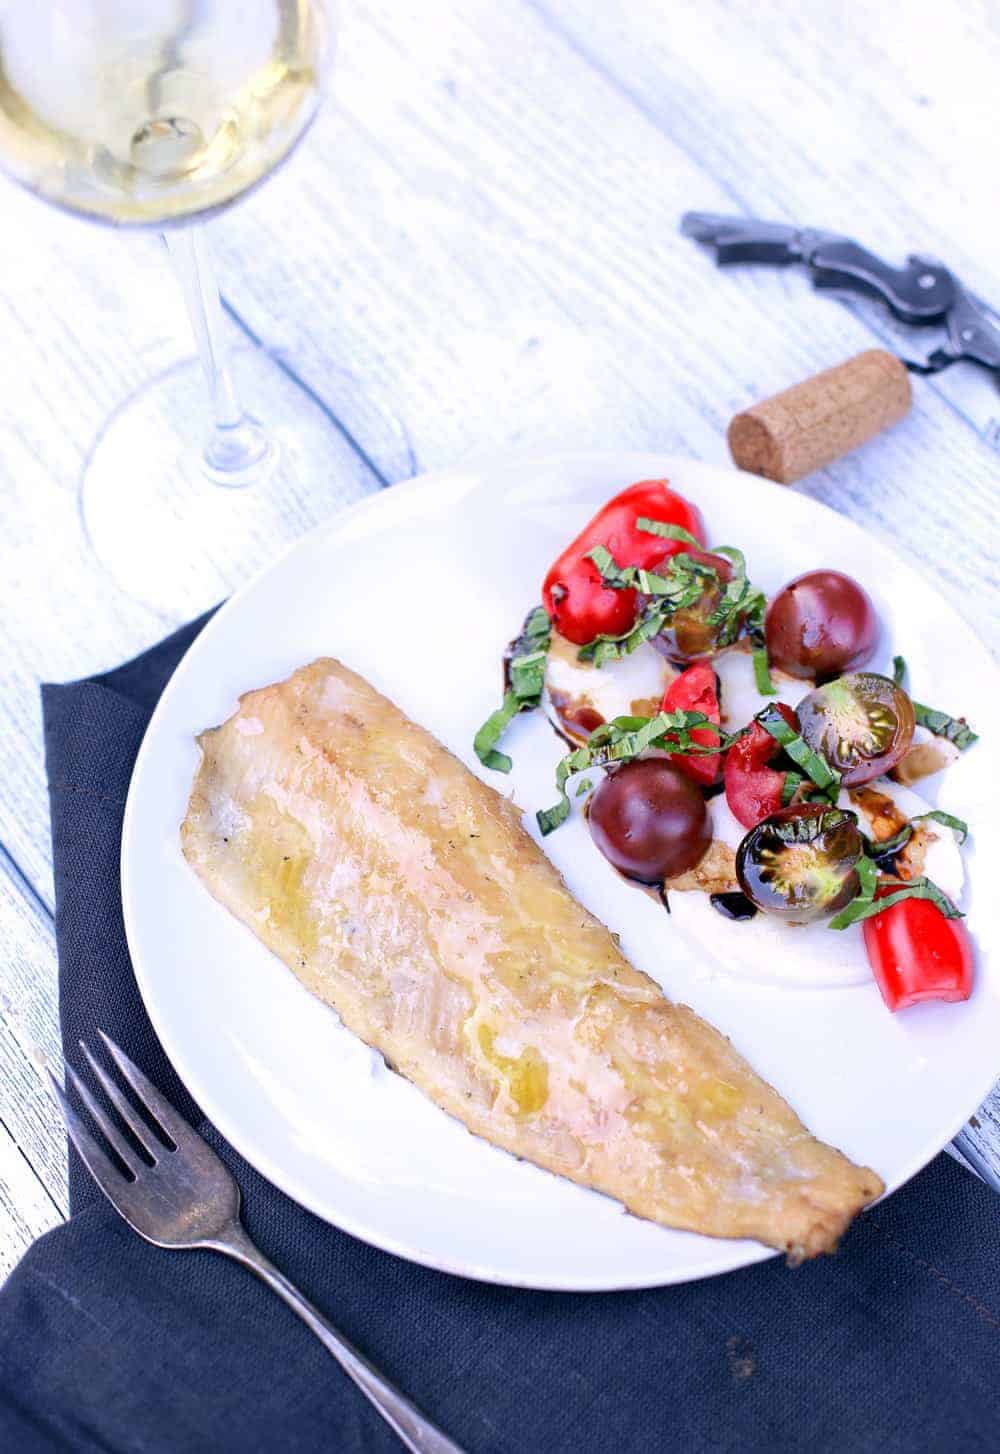 Easy Smoked Trout and Wine Pairing. A simple, light, healthy, dinner idea for your smoker or grill